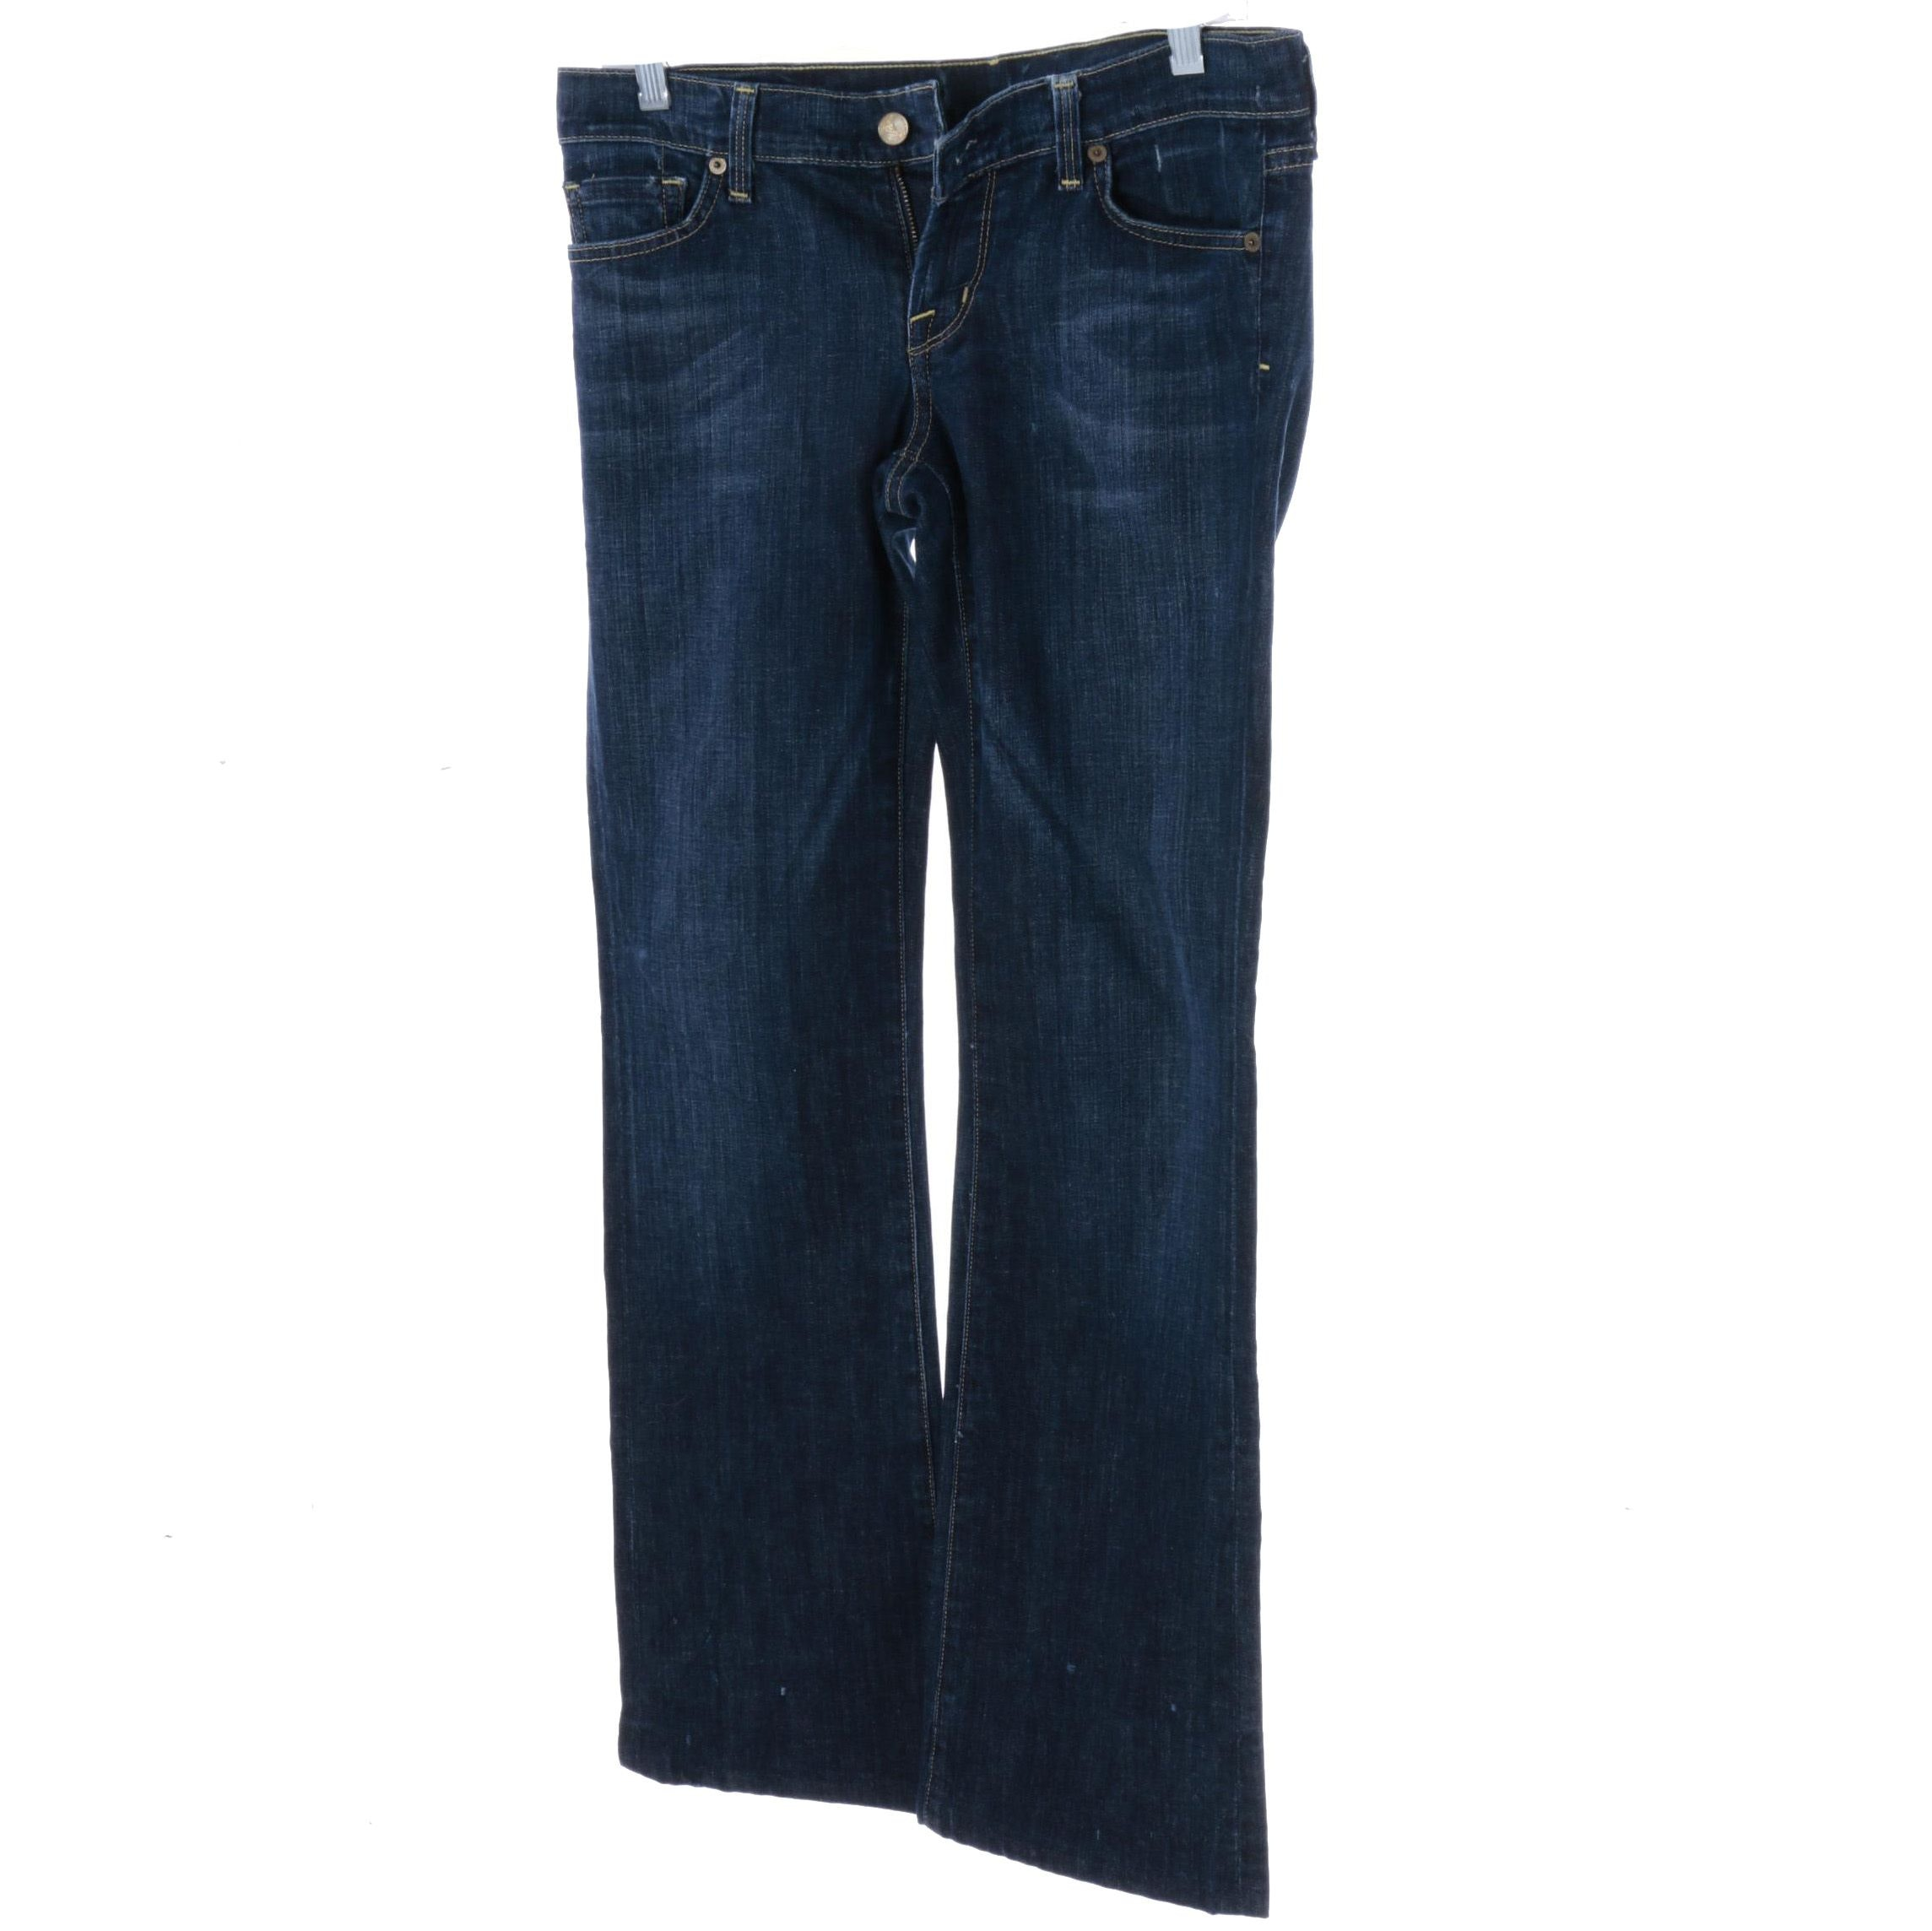 Women's Citizens of Humanity Kelly Stretch Low Waist Bootcut Jeans